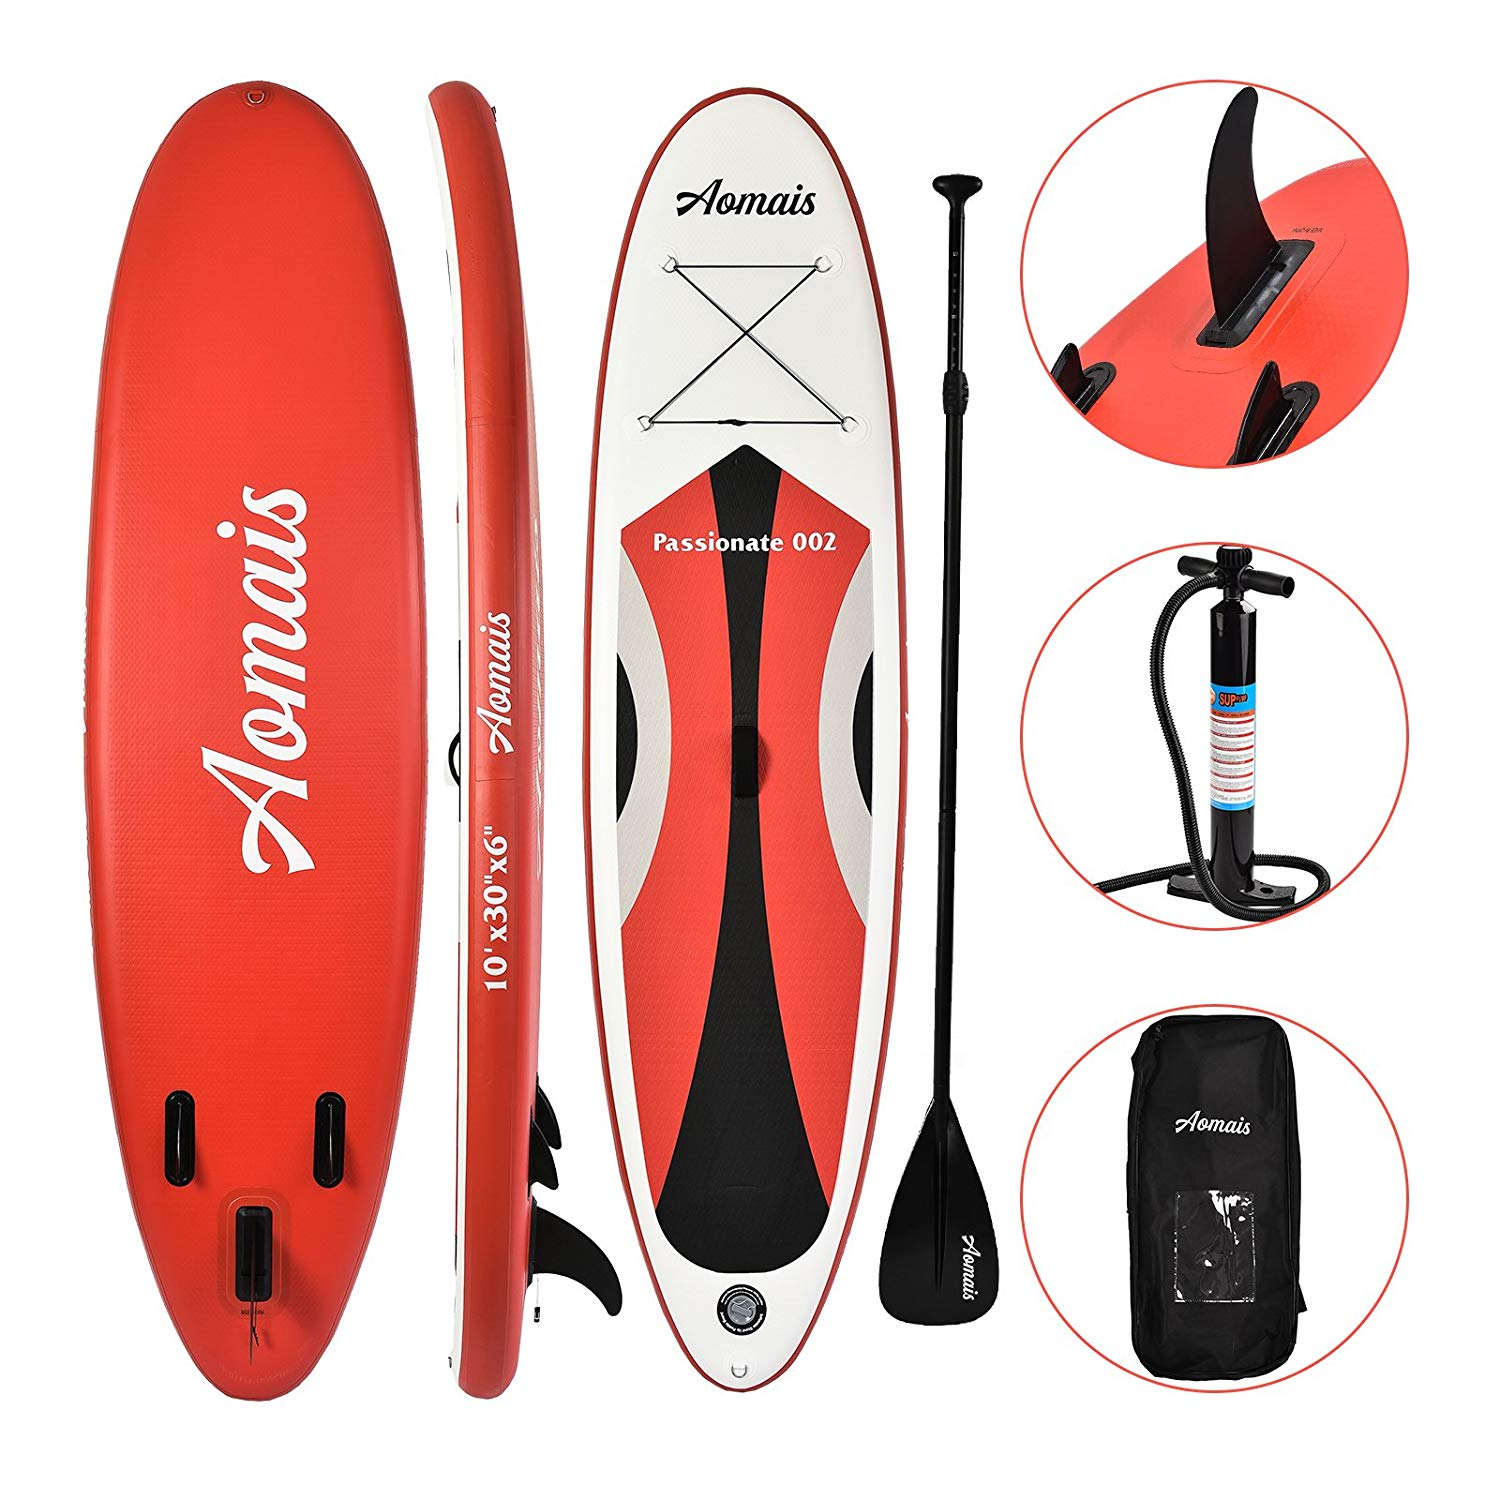 uEnjoy Inflatable Stand Up Paddle Board (6 Inches Thick) Non-Slip Deck Adjustable Paddle Backpack,Pump,Repairing kit